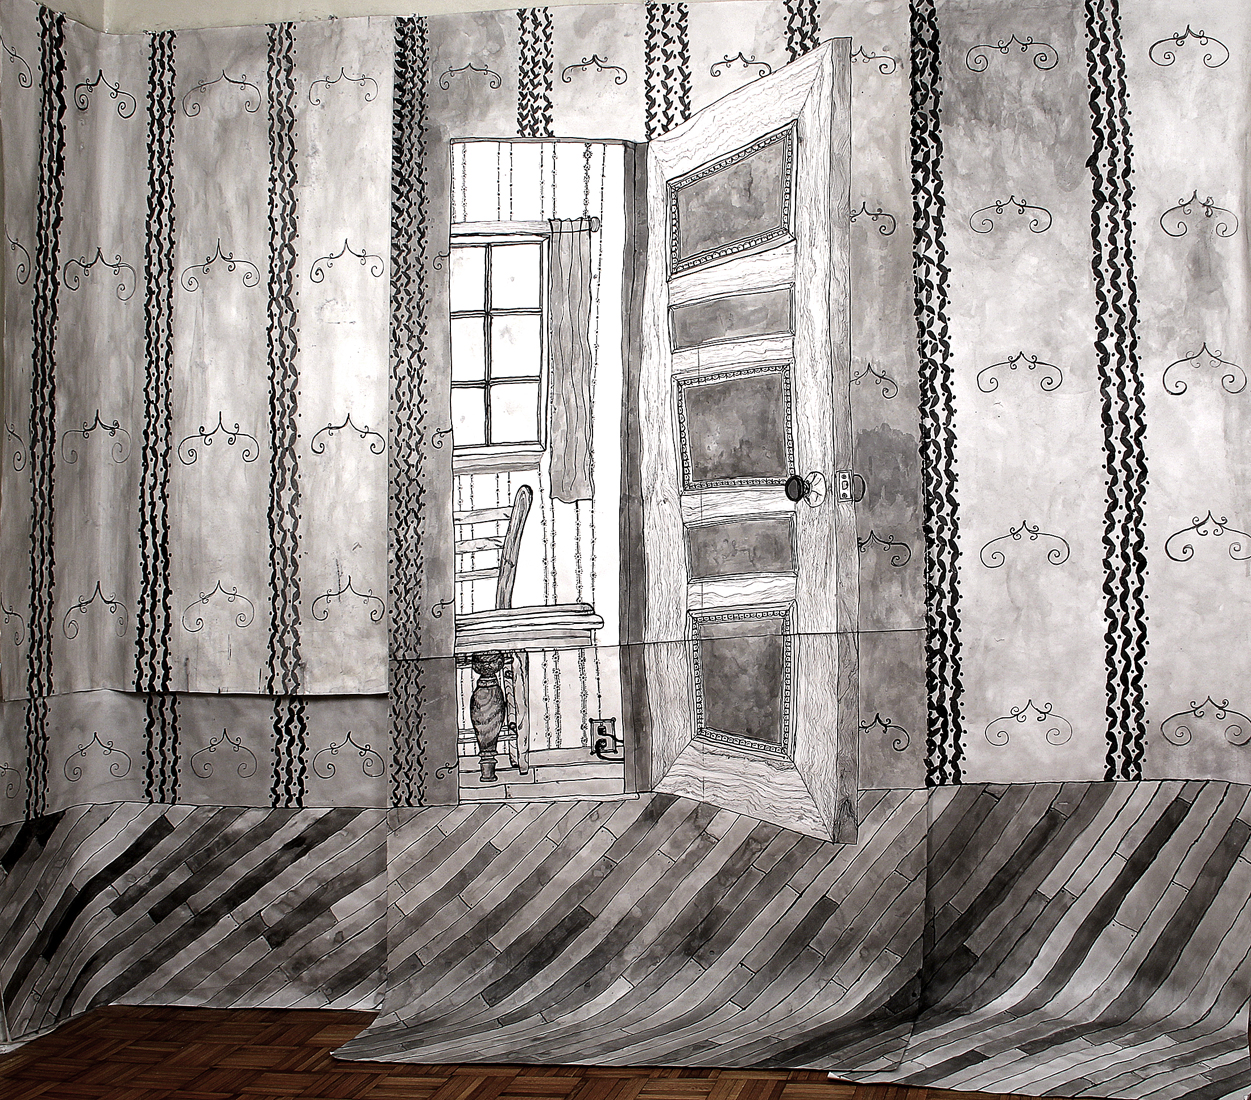 Side Room Expanse , 2013-15 ink on paper 9 x 9'